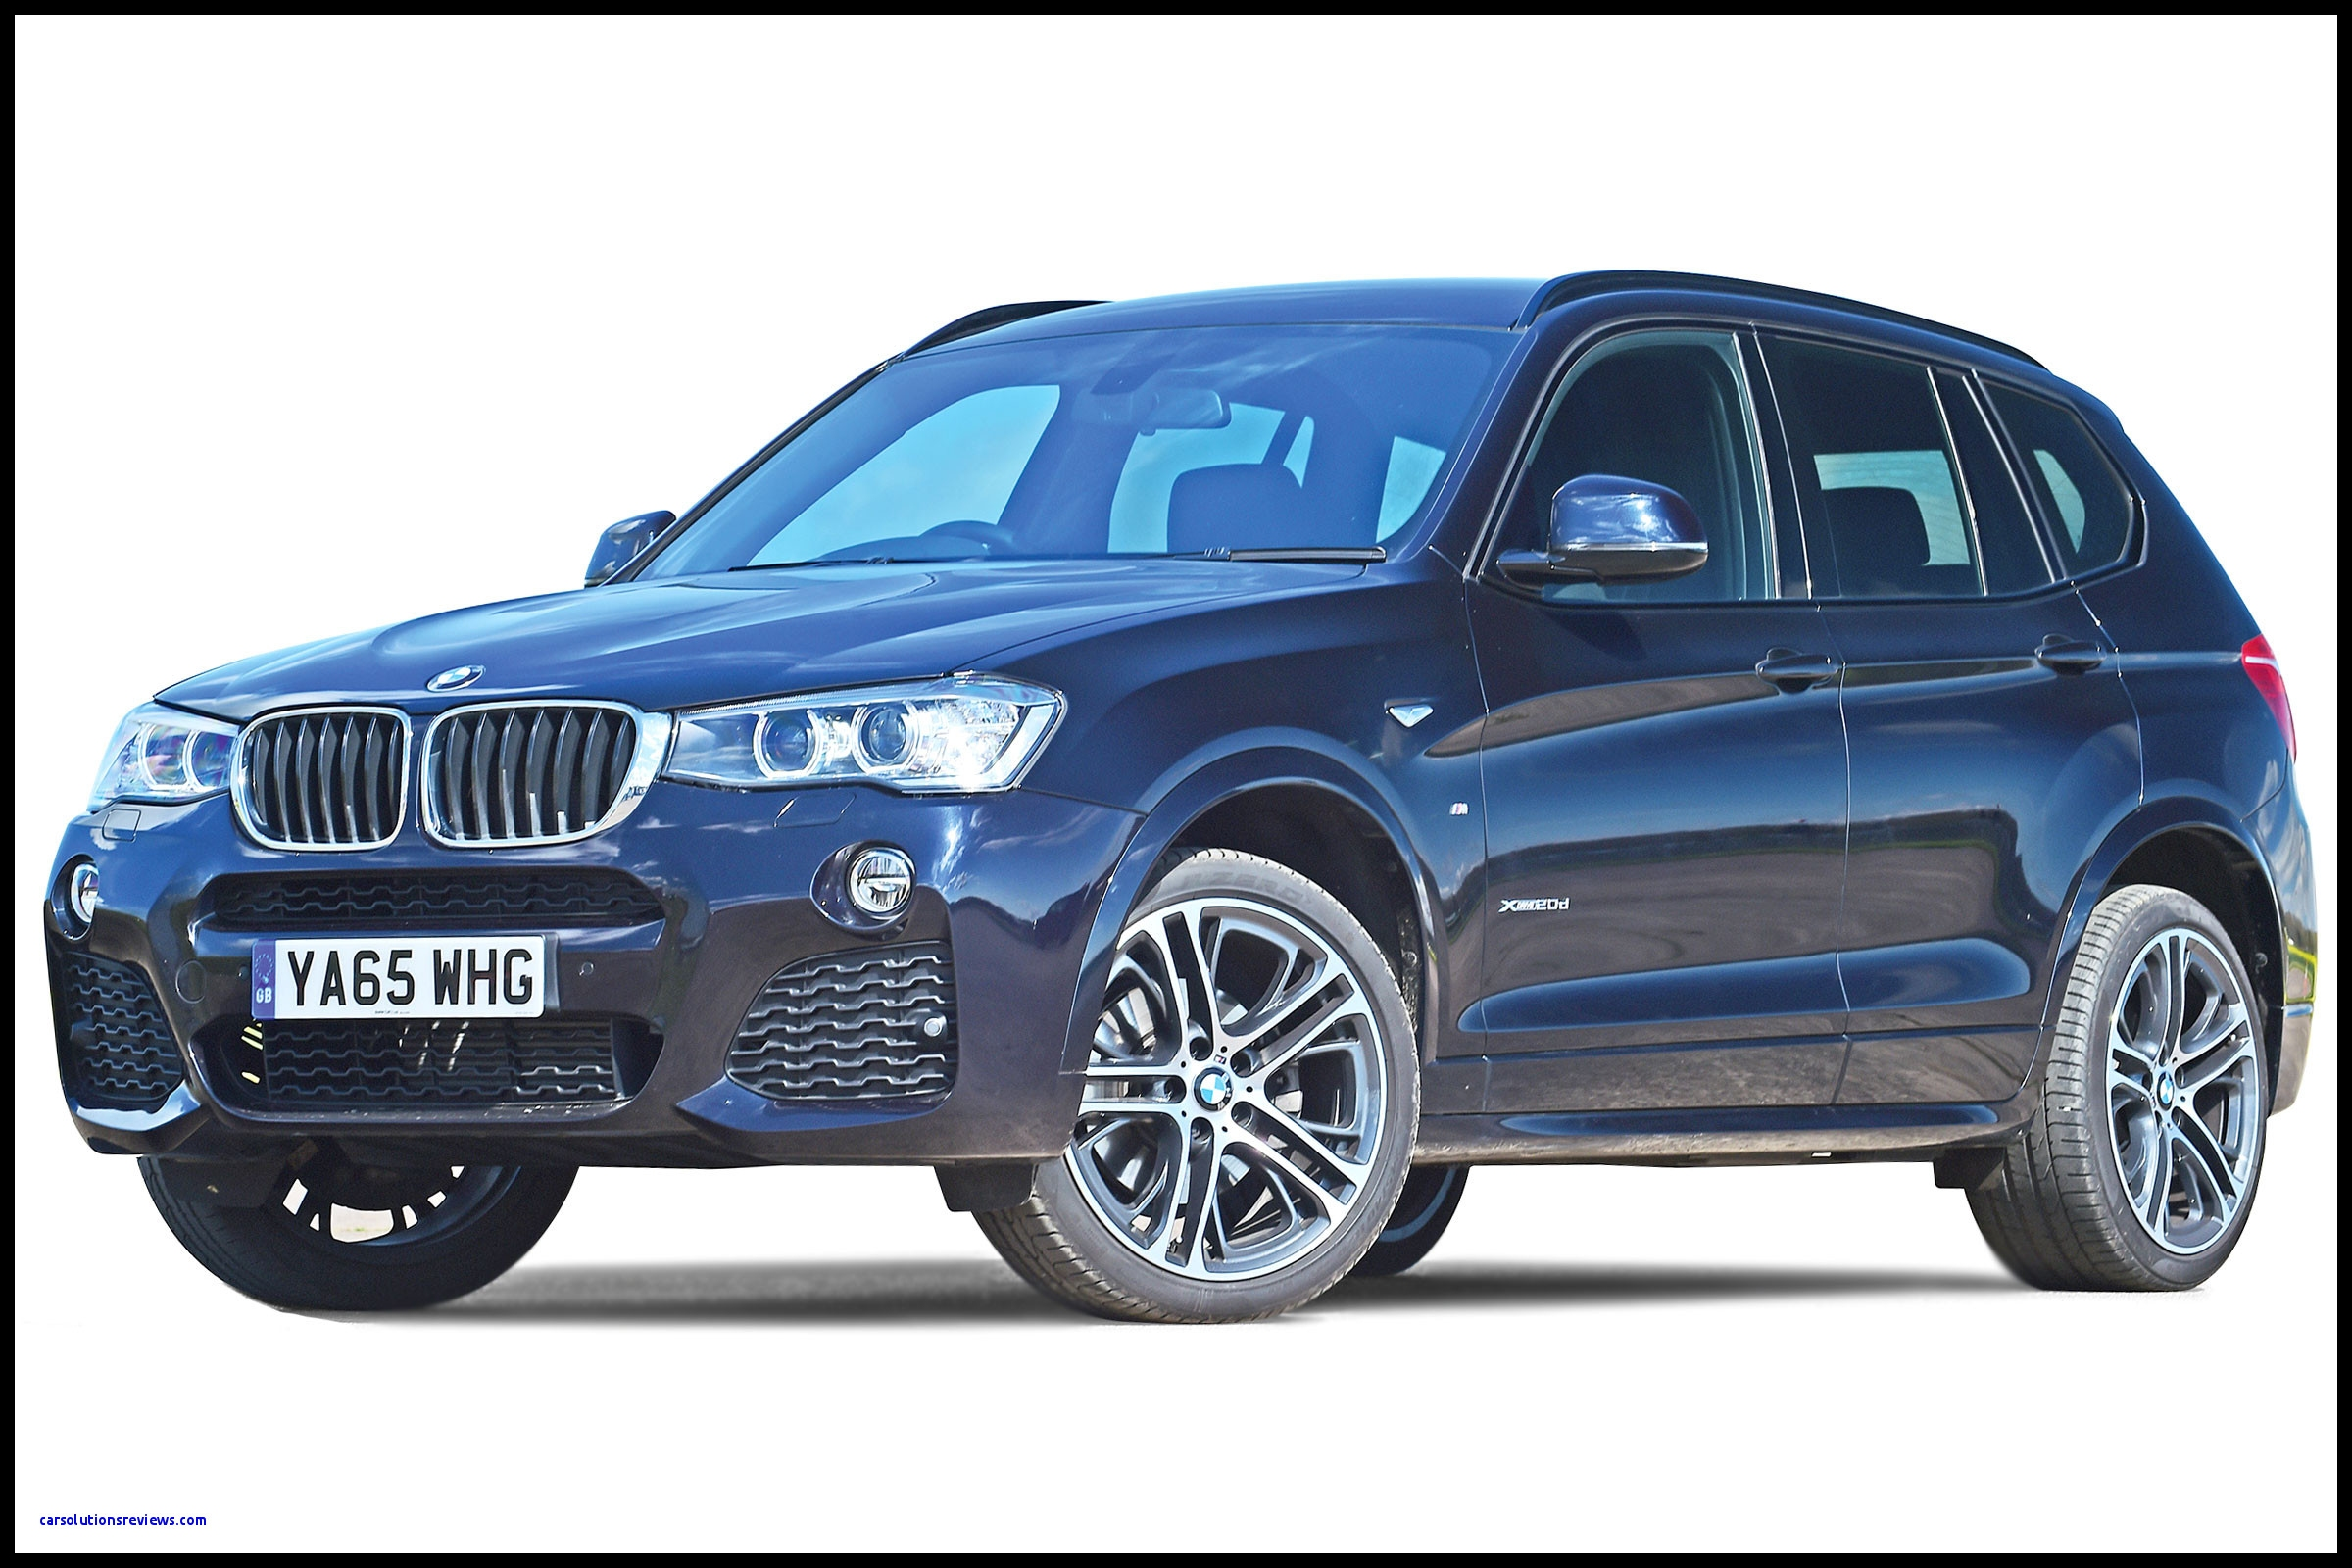 Car and Driver pare New Bmw X3 Suv 2010 2017 Owner Reviews Mpg Problems Reliability